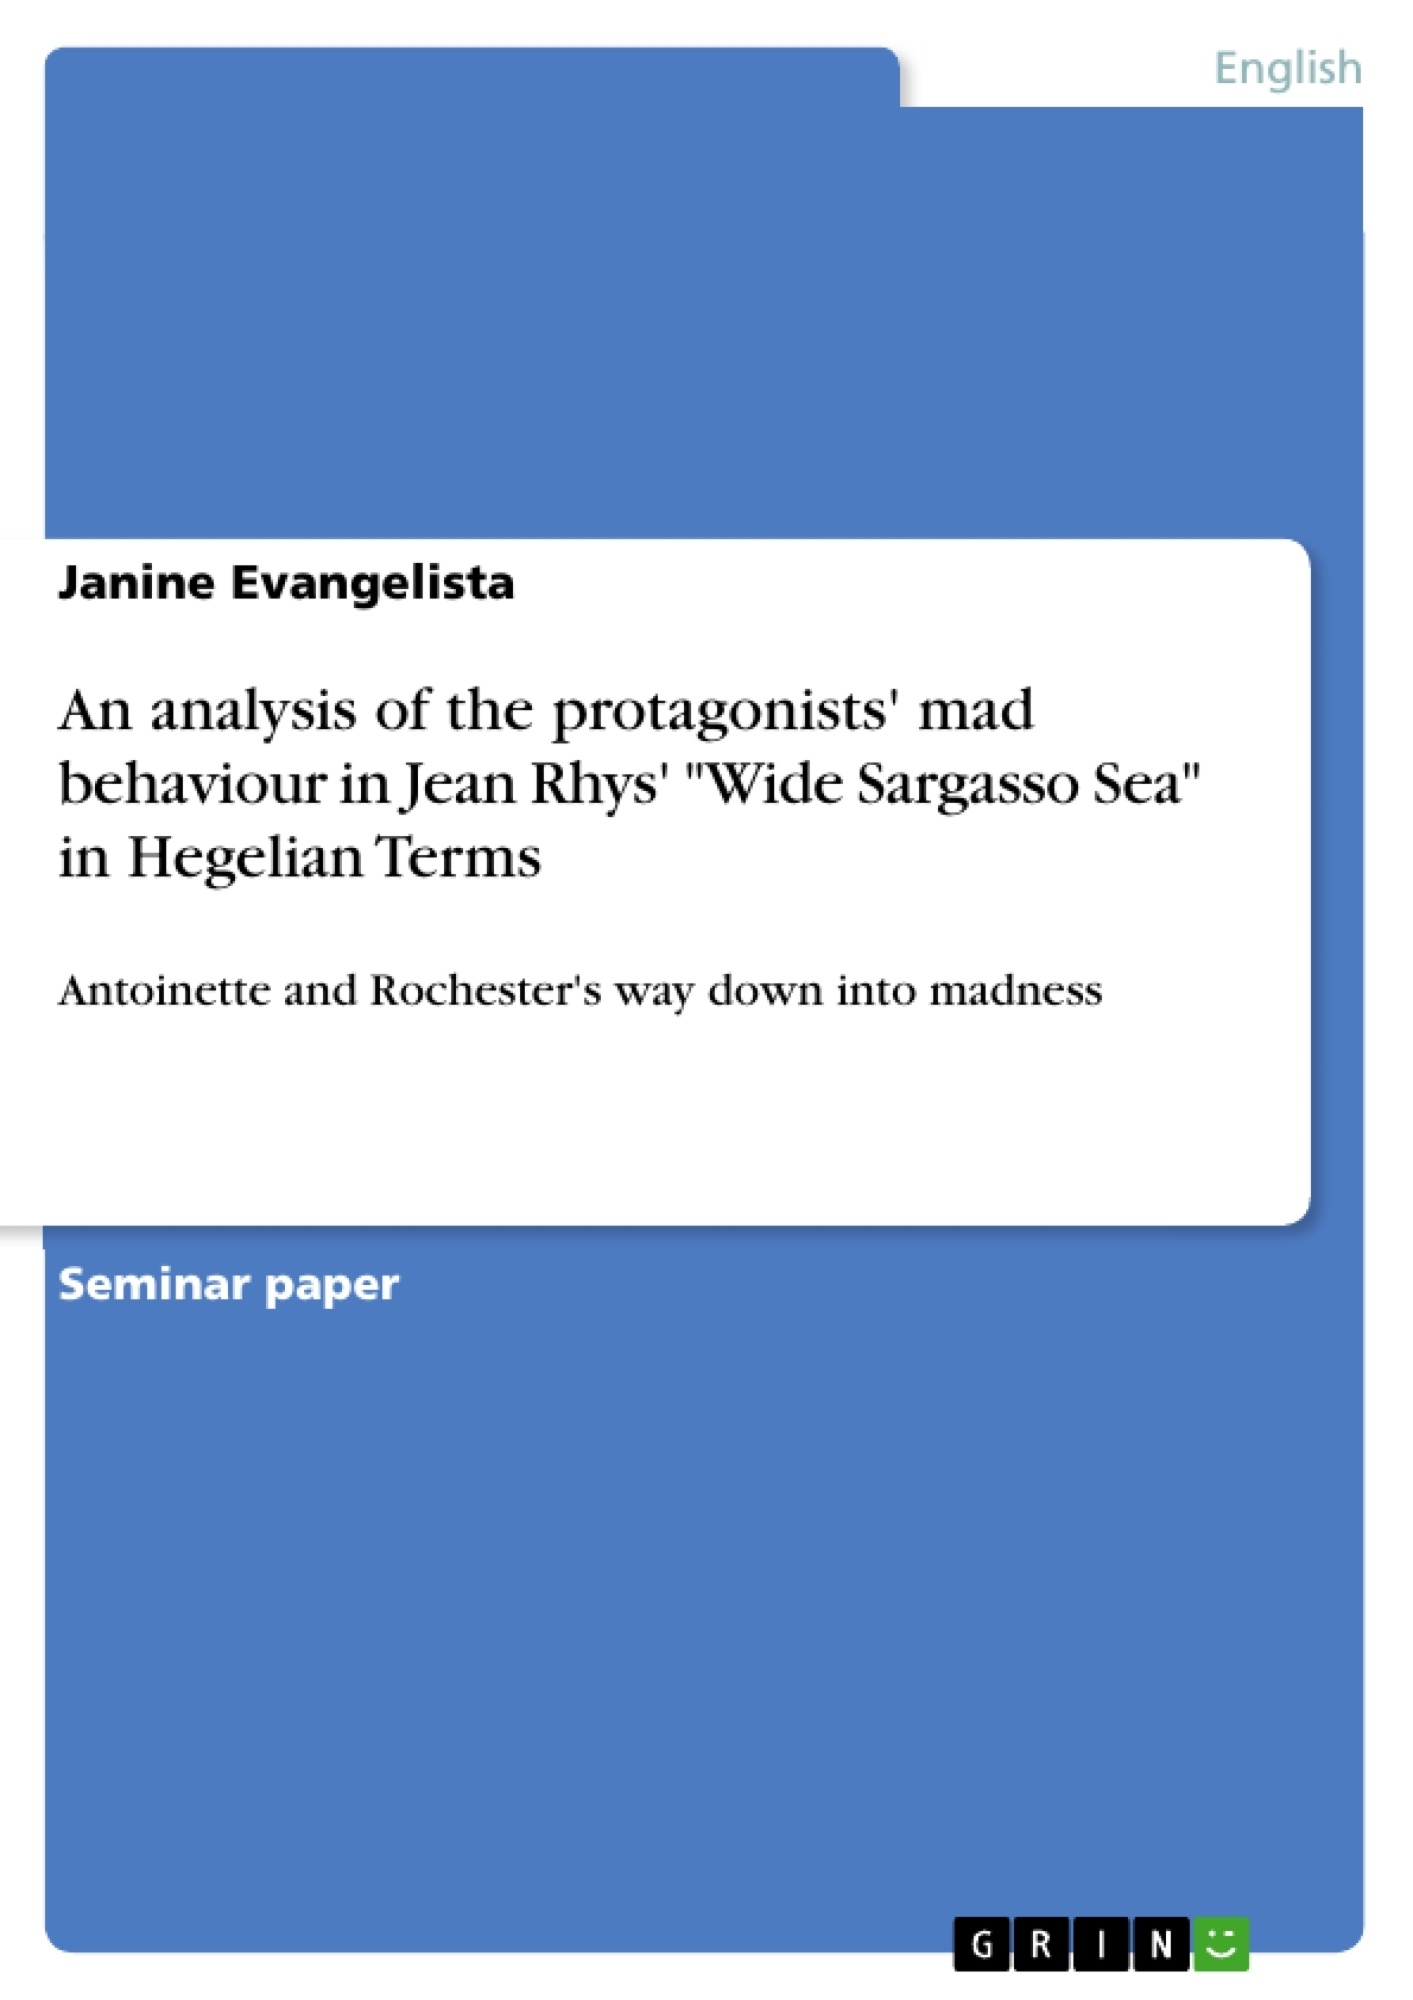 """Title: An analysis of the protagonists' mad behaviour in Jean Rhys' """"Wide Sargasso Sea"""" in Hegelian Terms"""